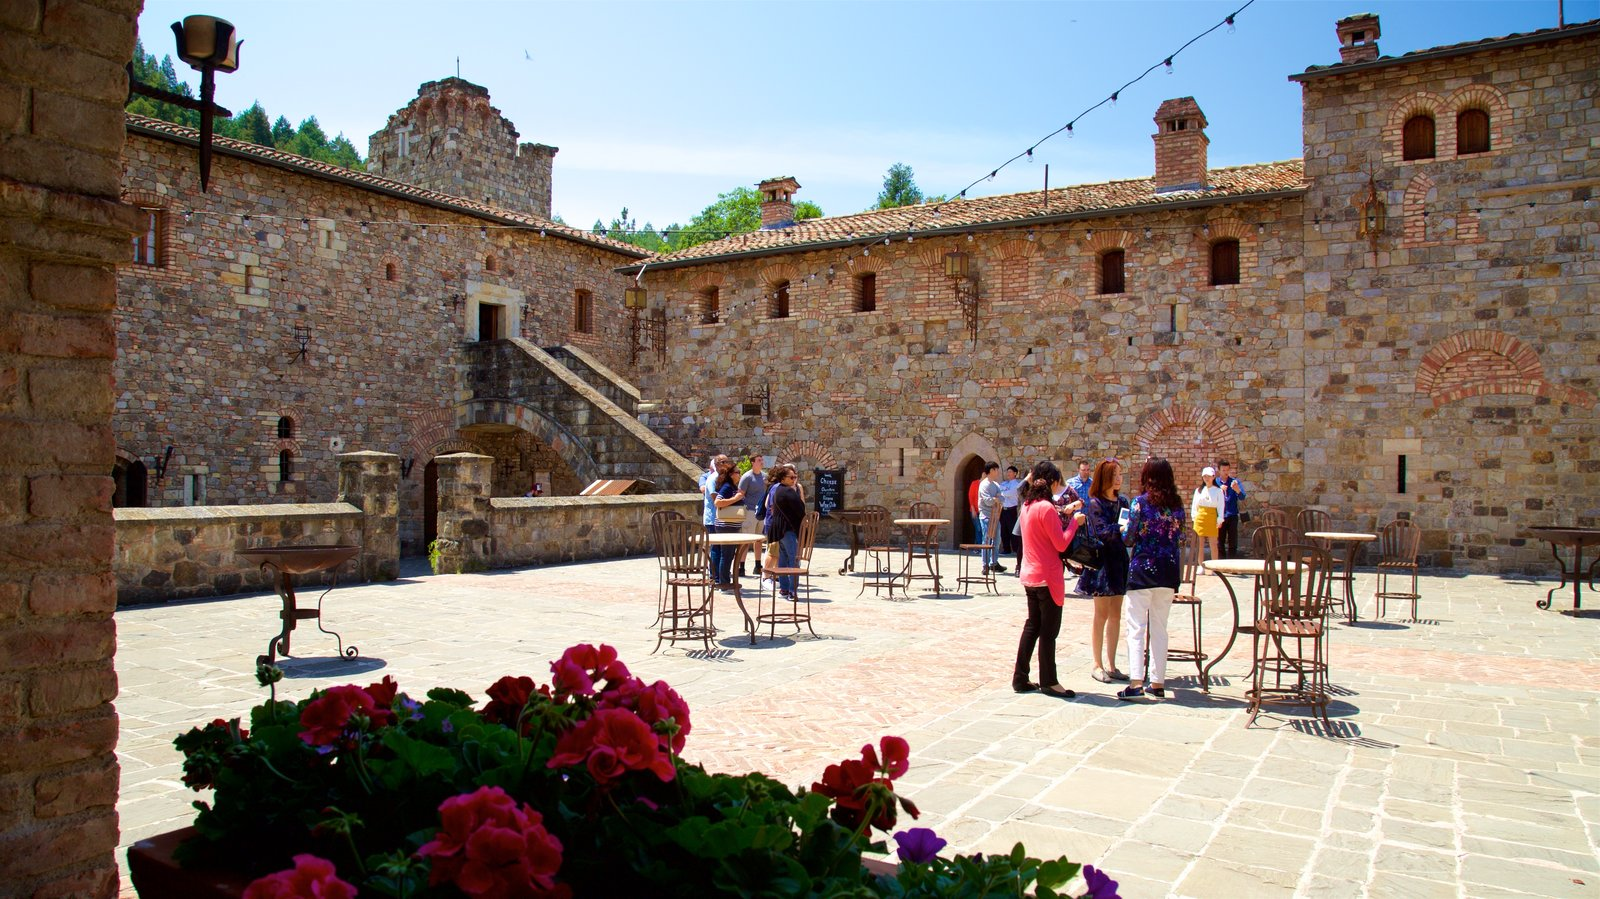 Castello di Amorosa featuring chateau or palace, a square or plaza and flowers